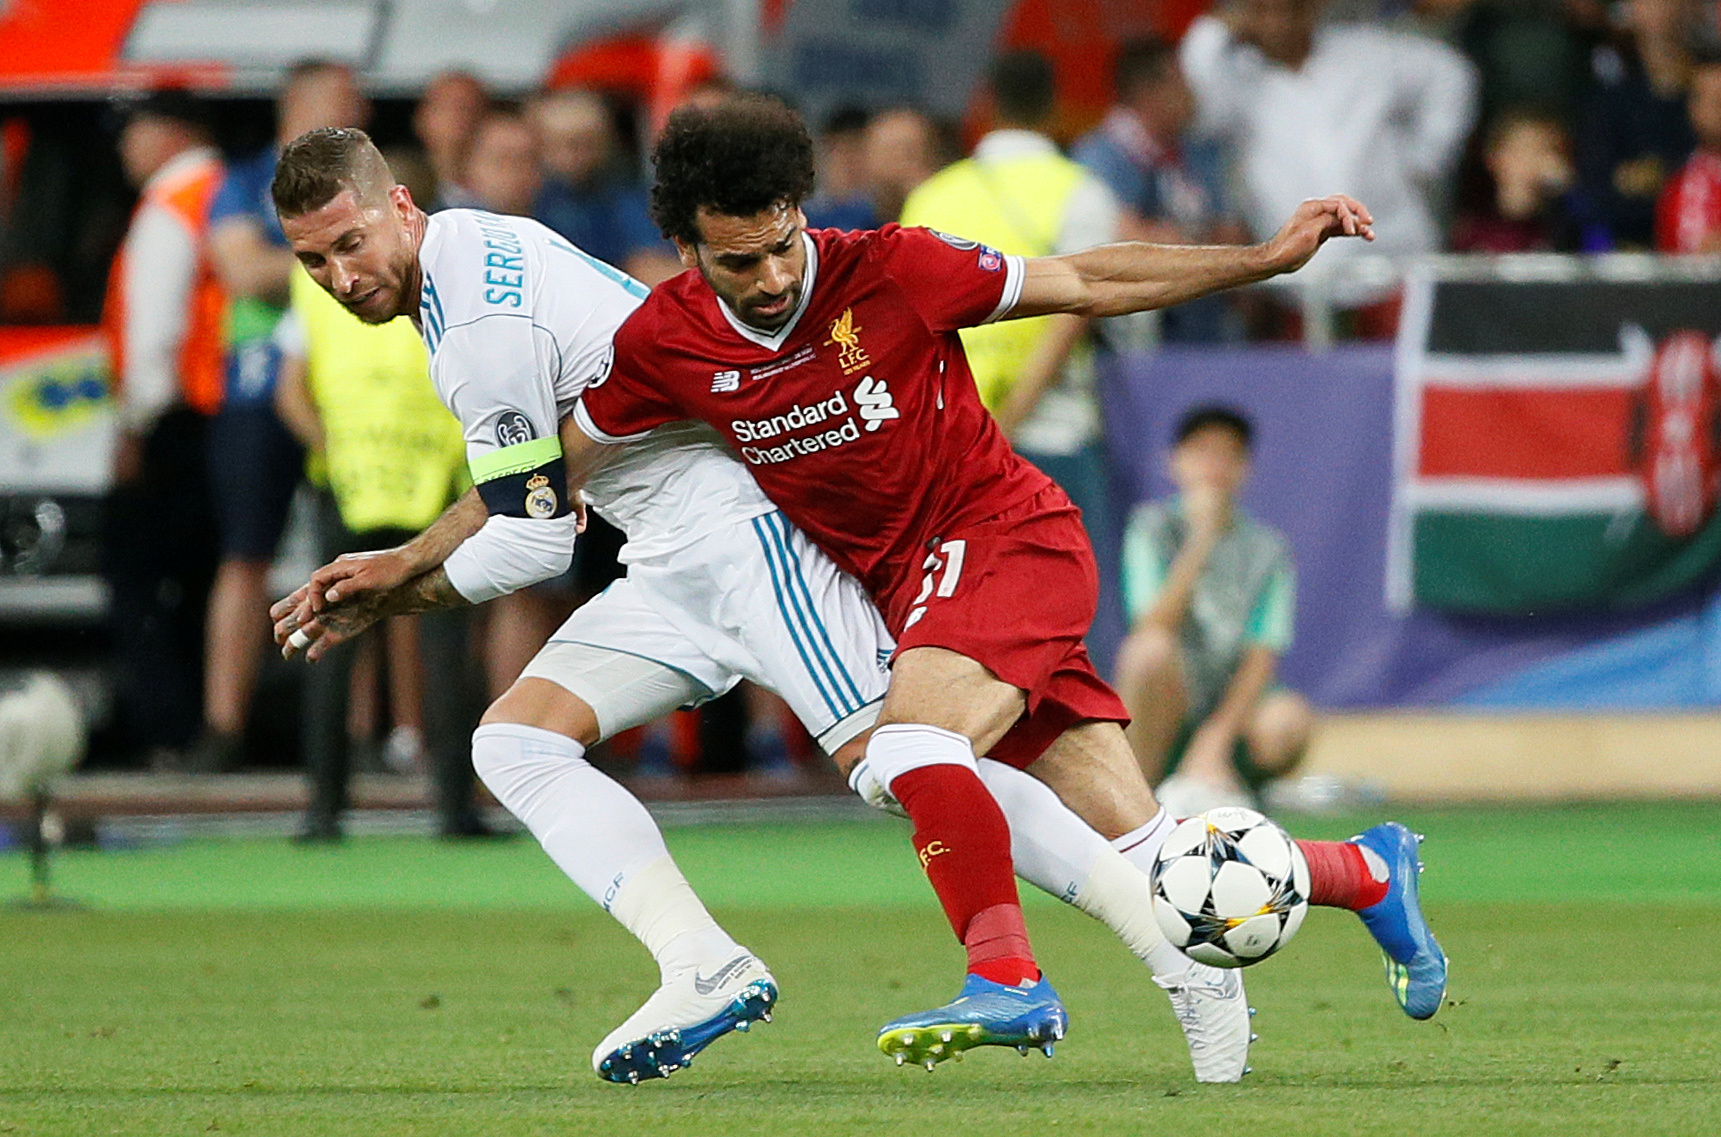 Soccer Football - Champions League Final - Real Madrid v Liverpool - NSC Olympic Stadium, Kiev, Ukraine - May 26, 2018   Liverpool's Mohamed Salah injures his shoulder in a challenge with Real Madrid's Sergio Ramos      REUTERS/Gleb Garanich